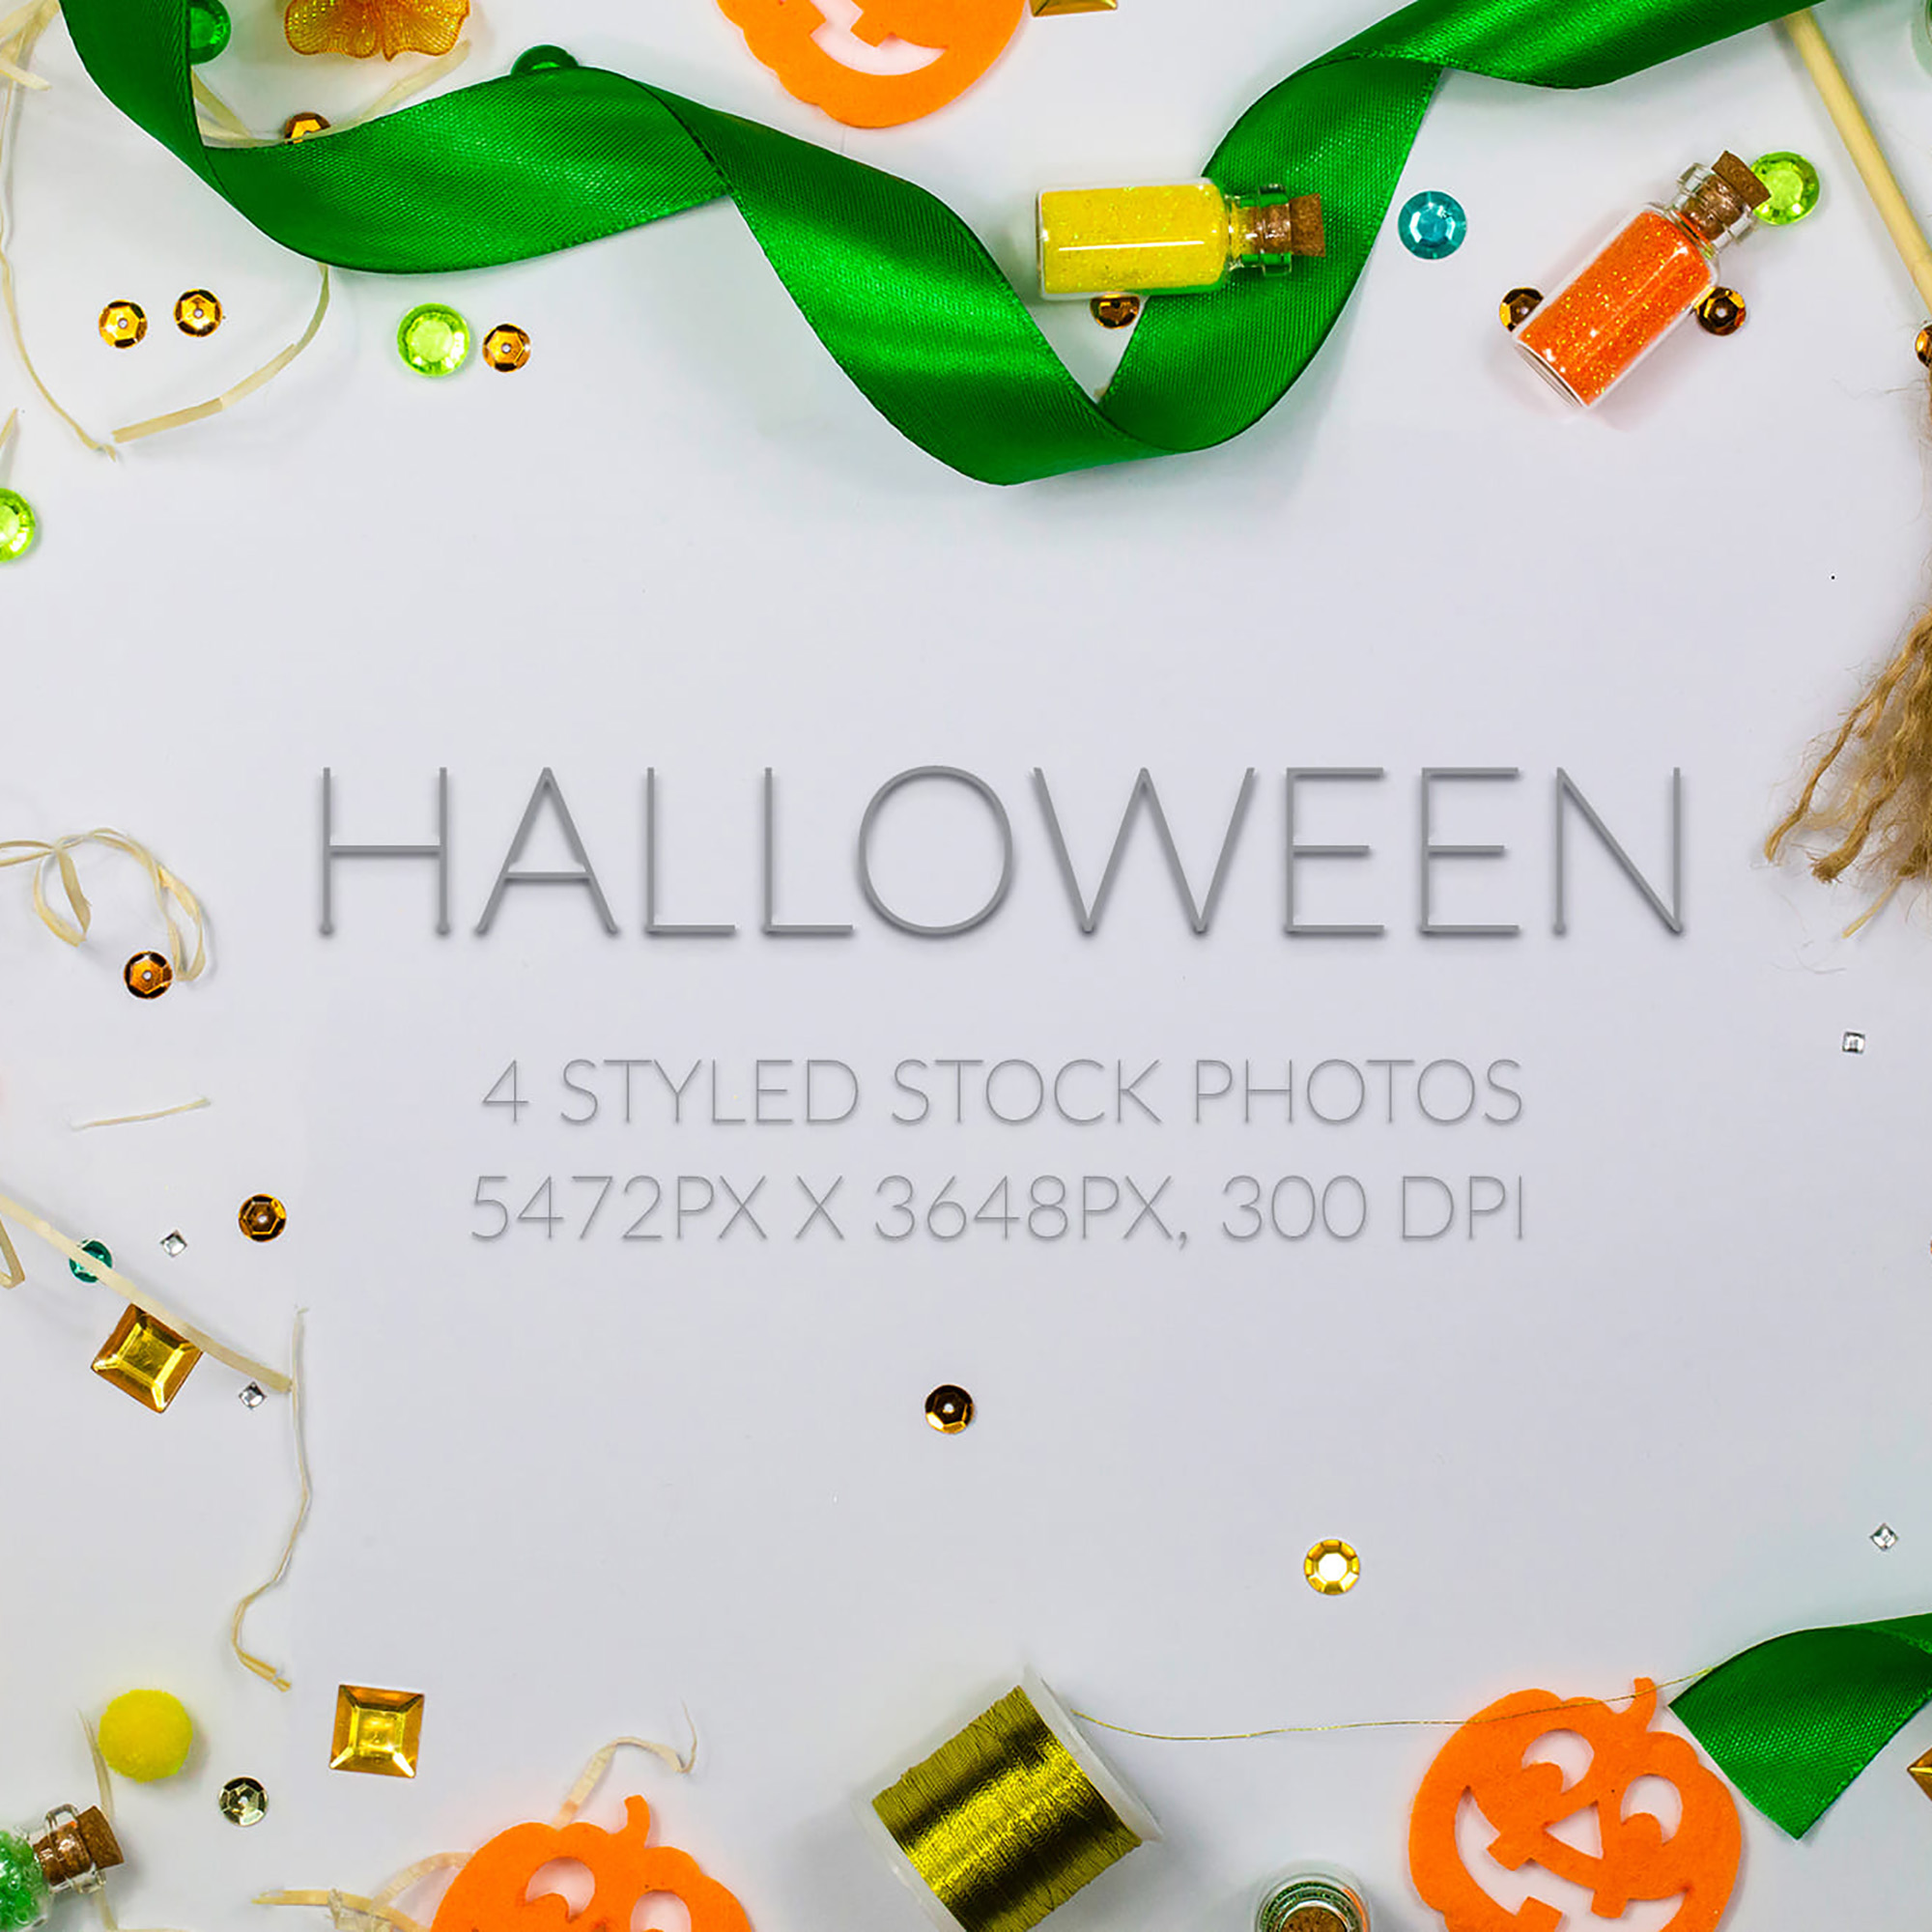 6 Skull PNG Transparent Halloween Overlays - Halloween Stock Photos